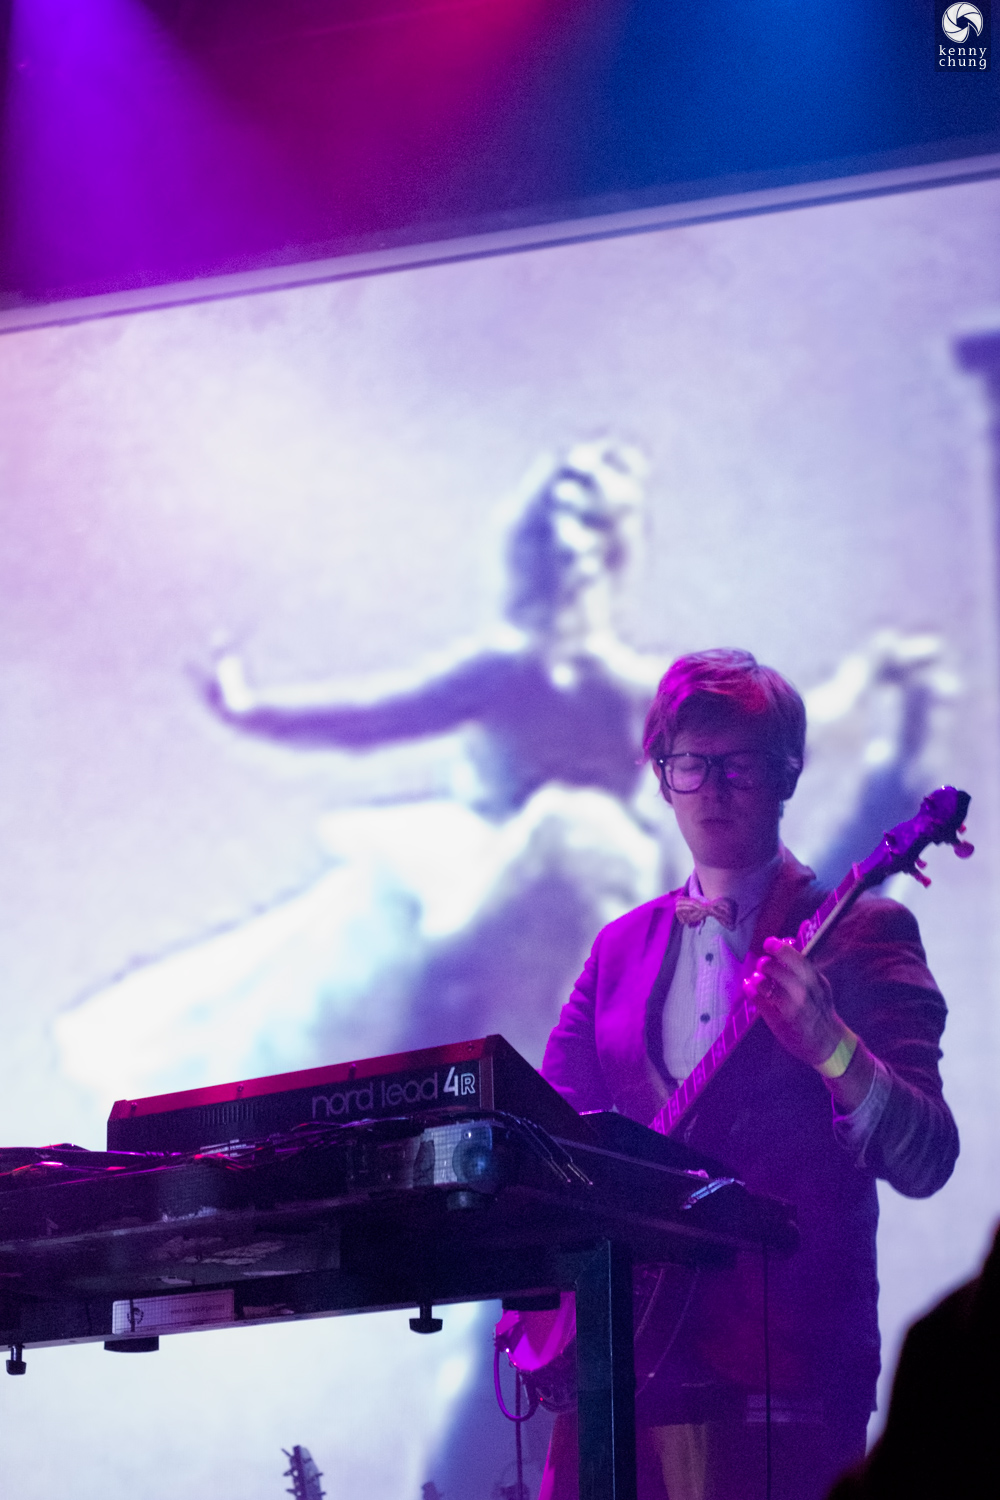 Public Service Broadcasting playing ROYGBIV